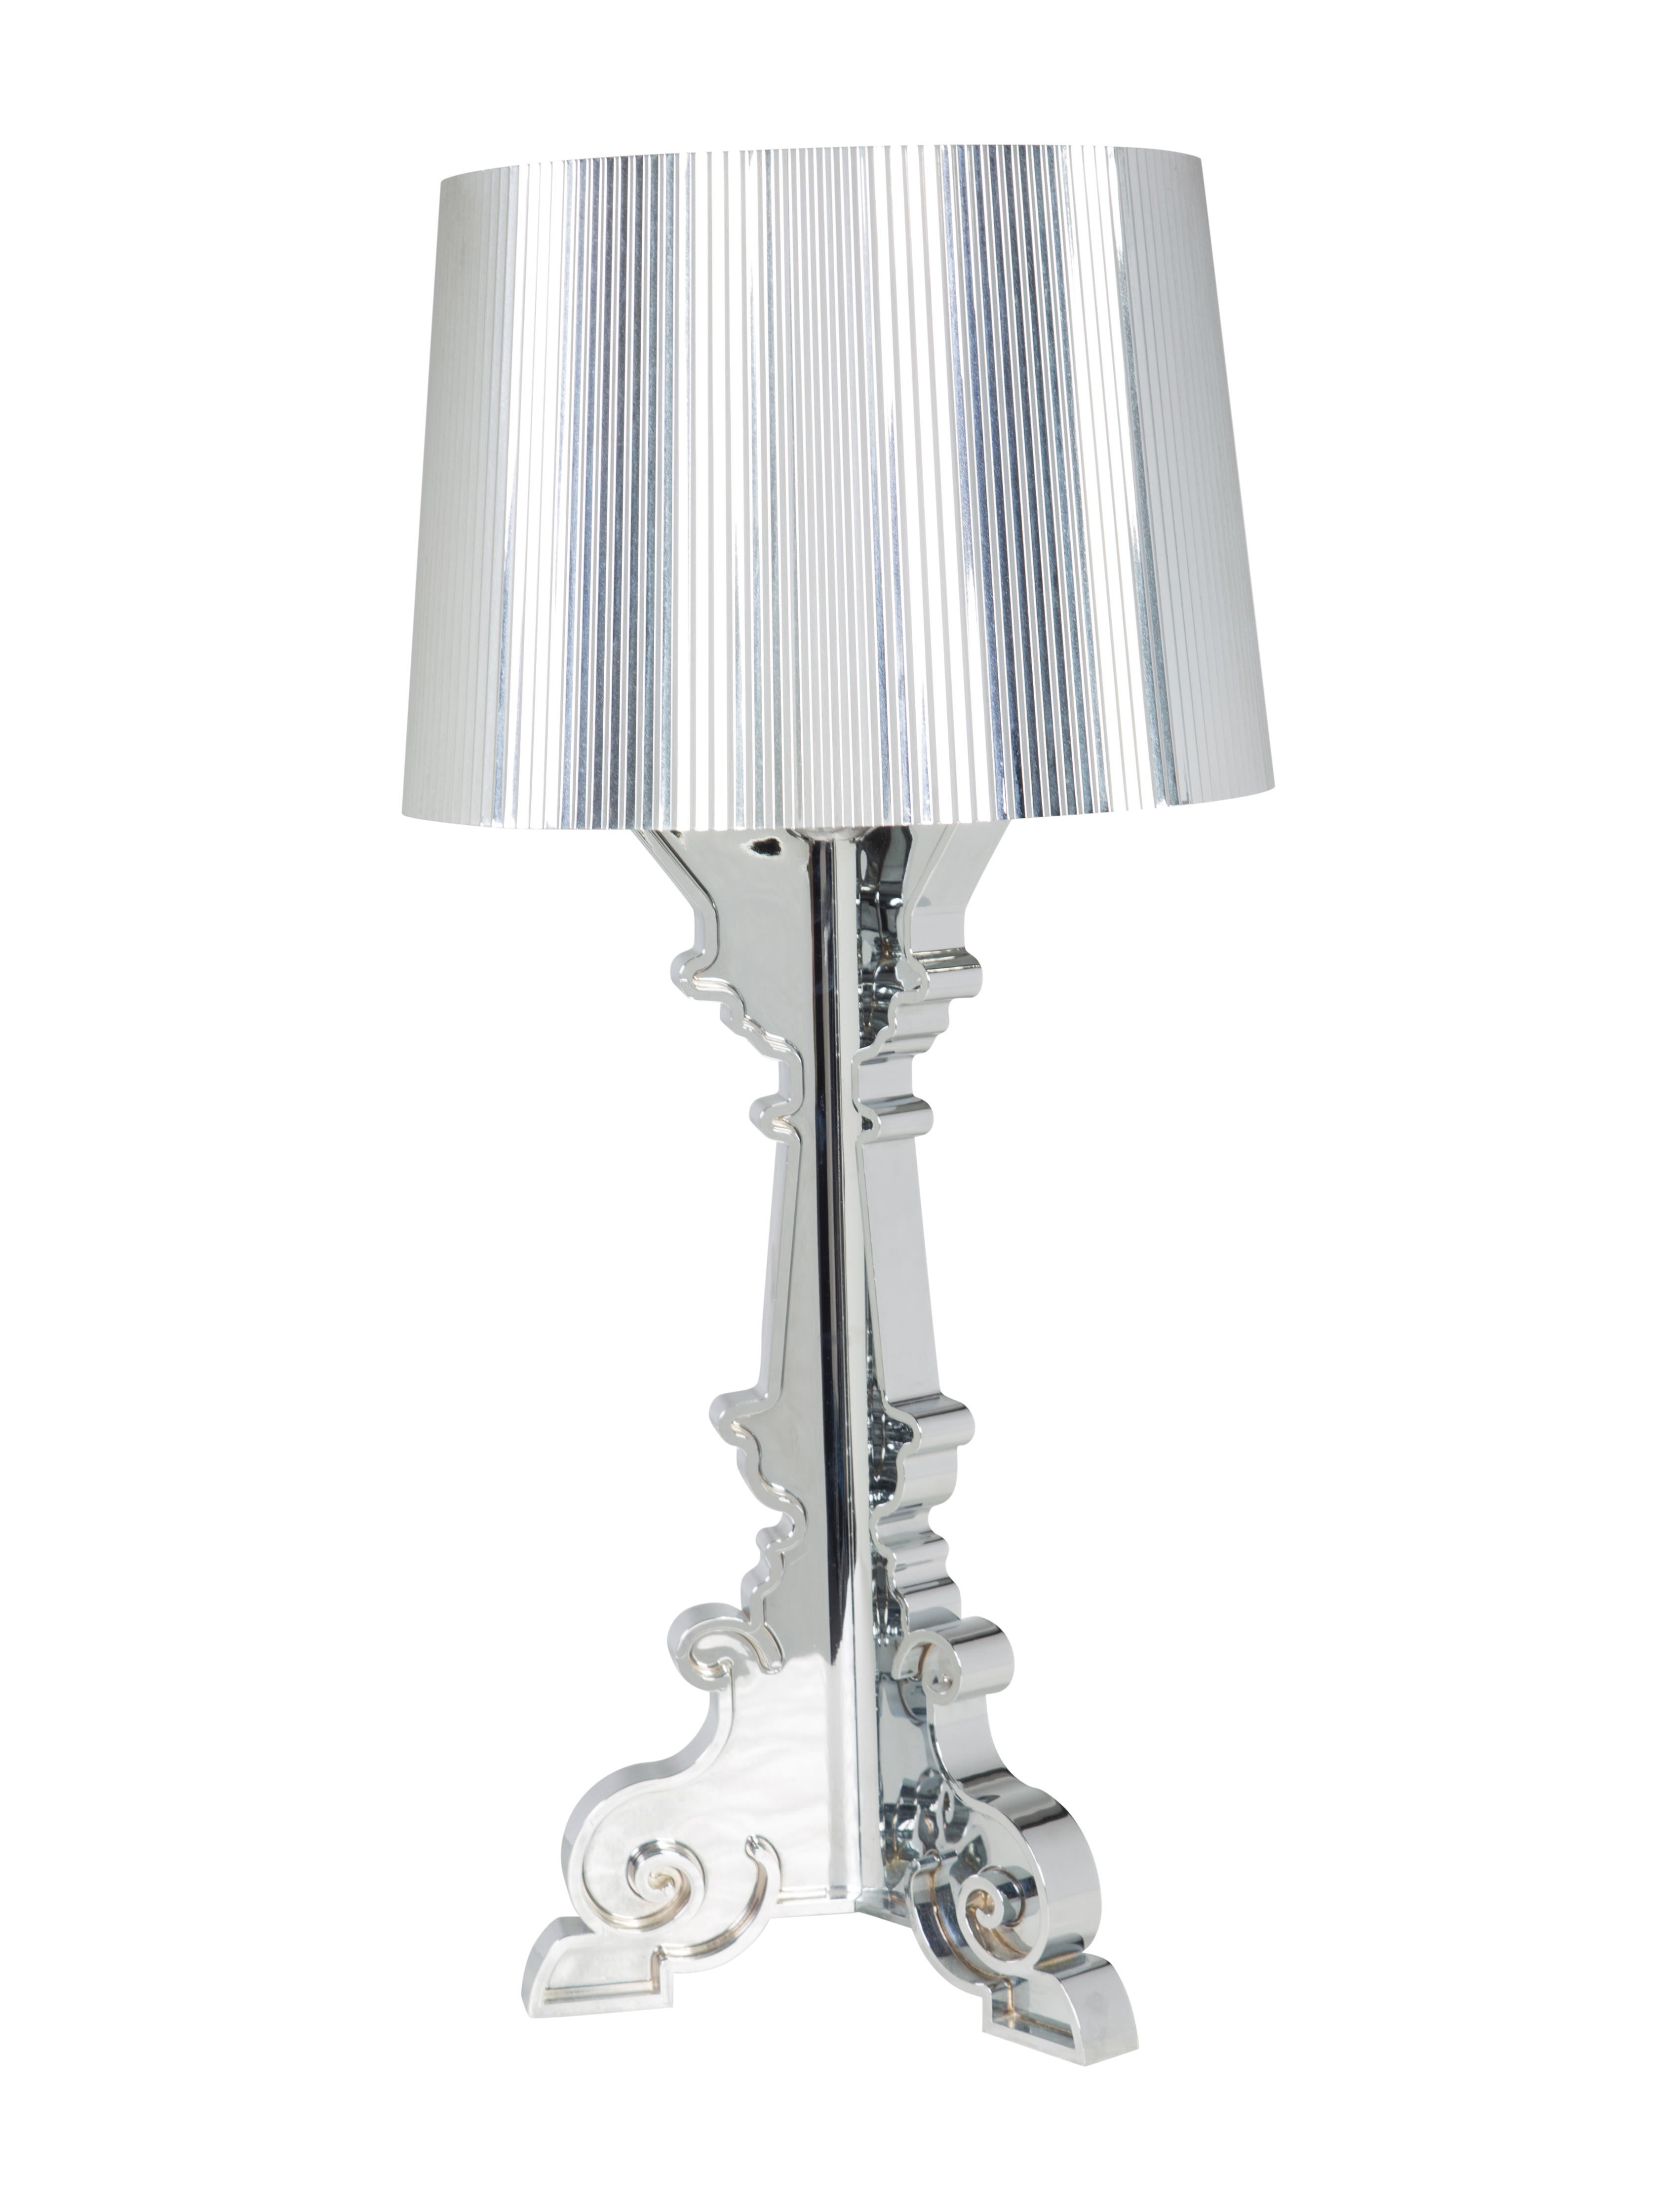 Kartell bourgie table lamp lighting ktl20120 the for Ferruccio laviani bourgie lamp